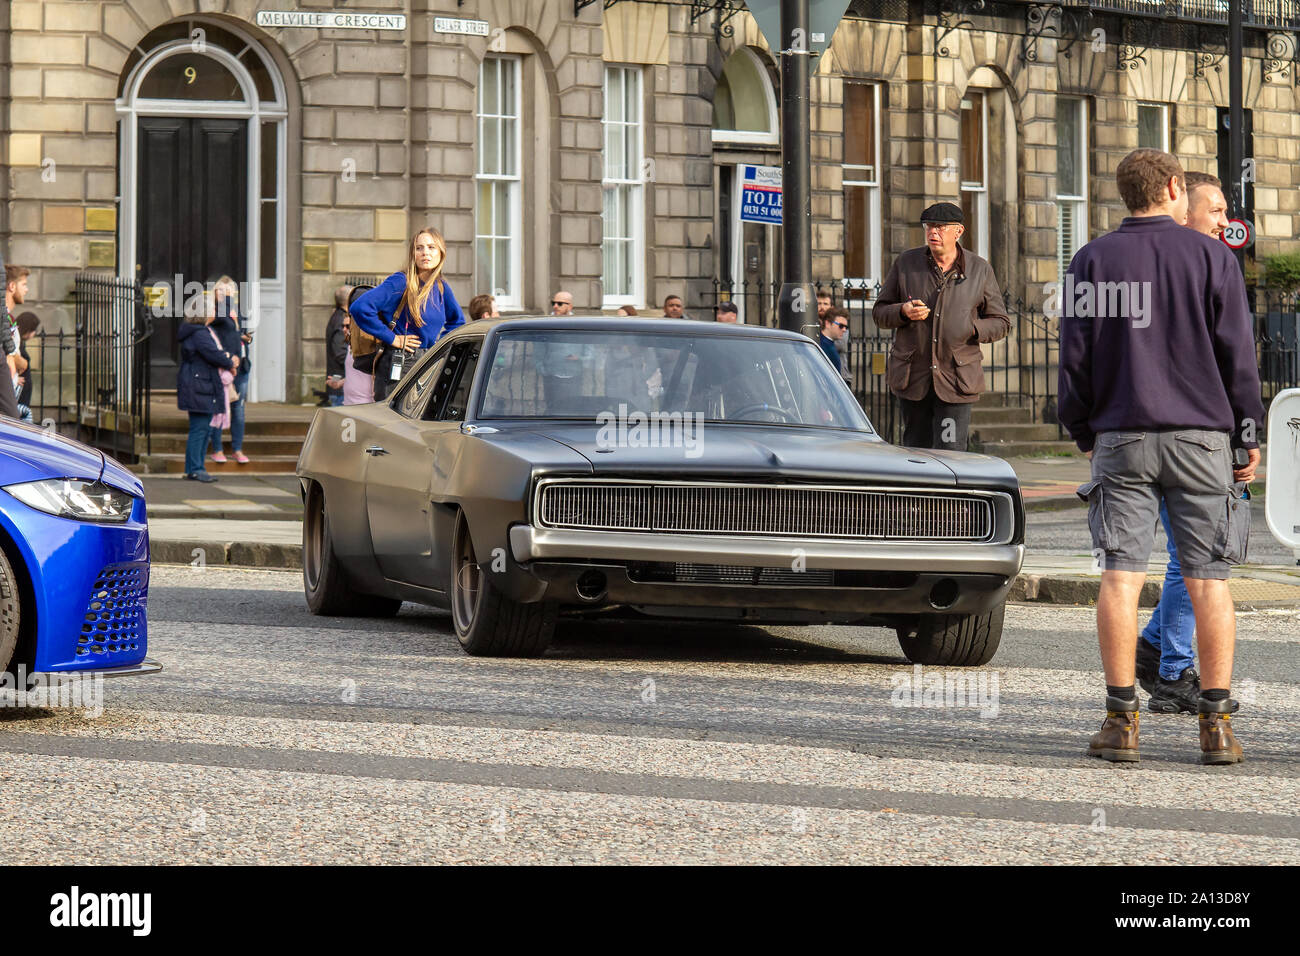 Fast And Furious 9 High Resolution Stock Photography And Images Alamy